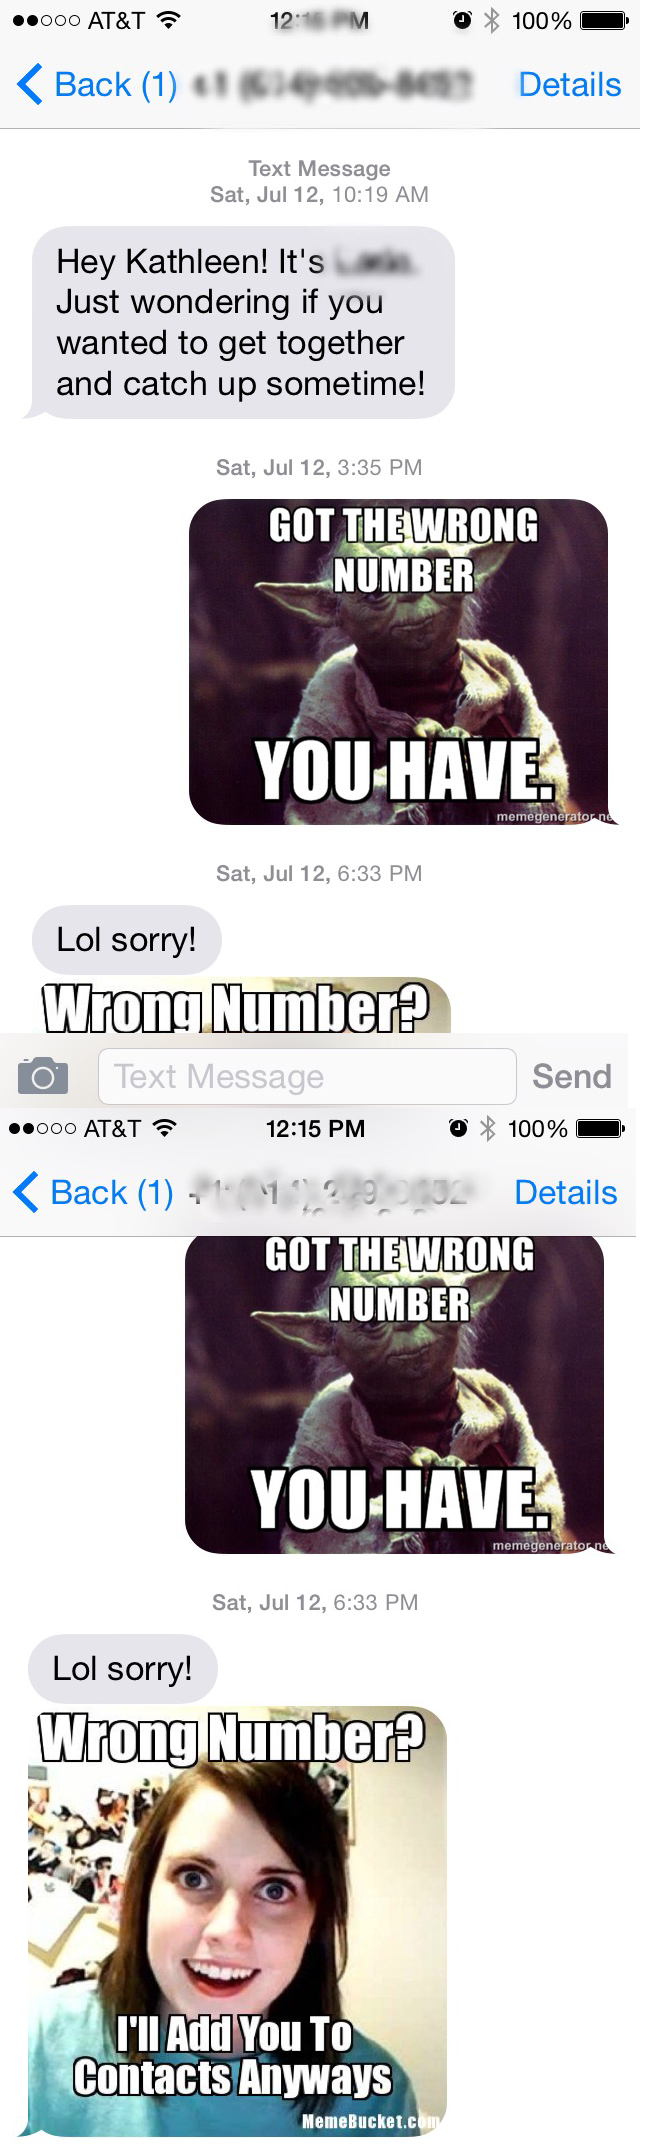 funny-text-wrong-number-memes